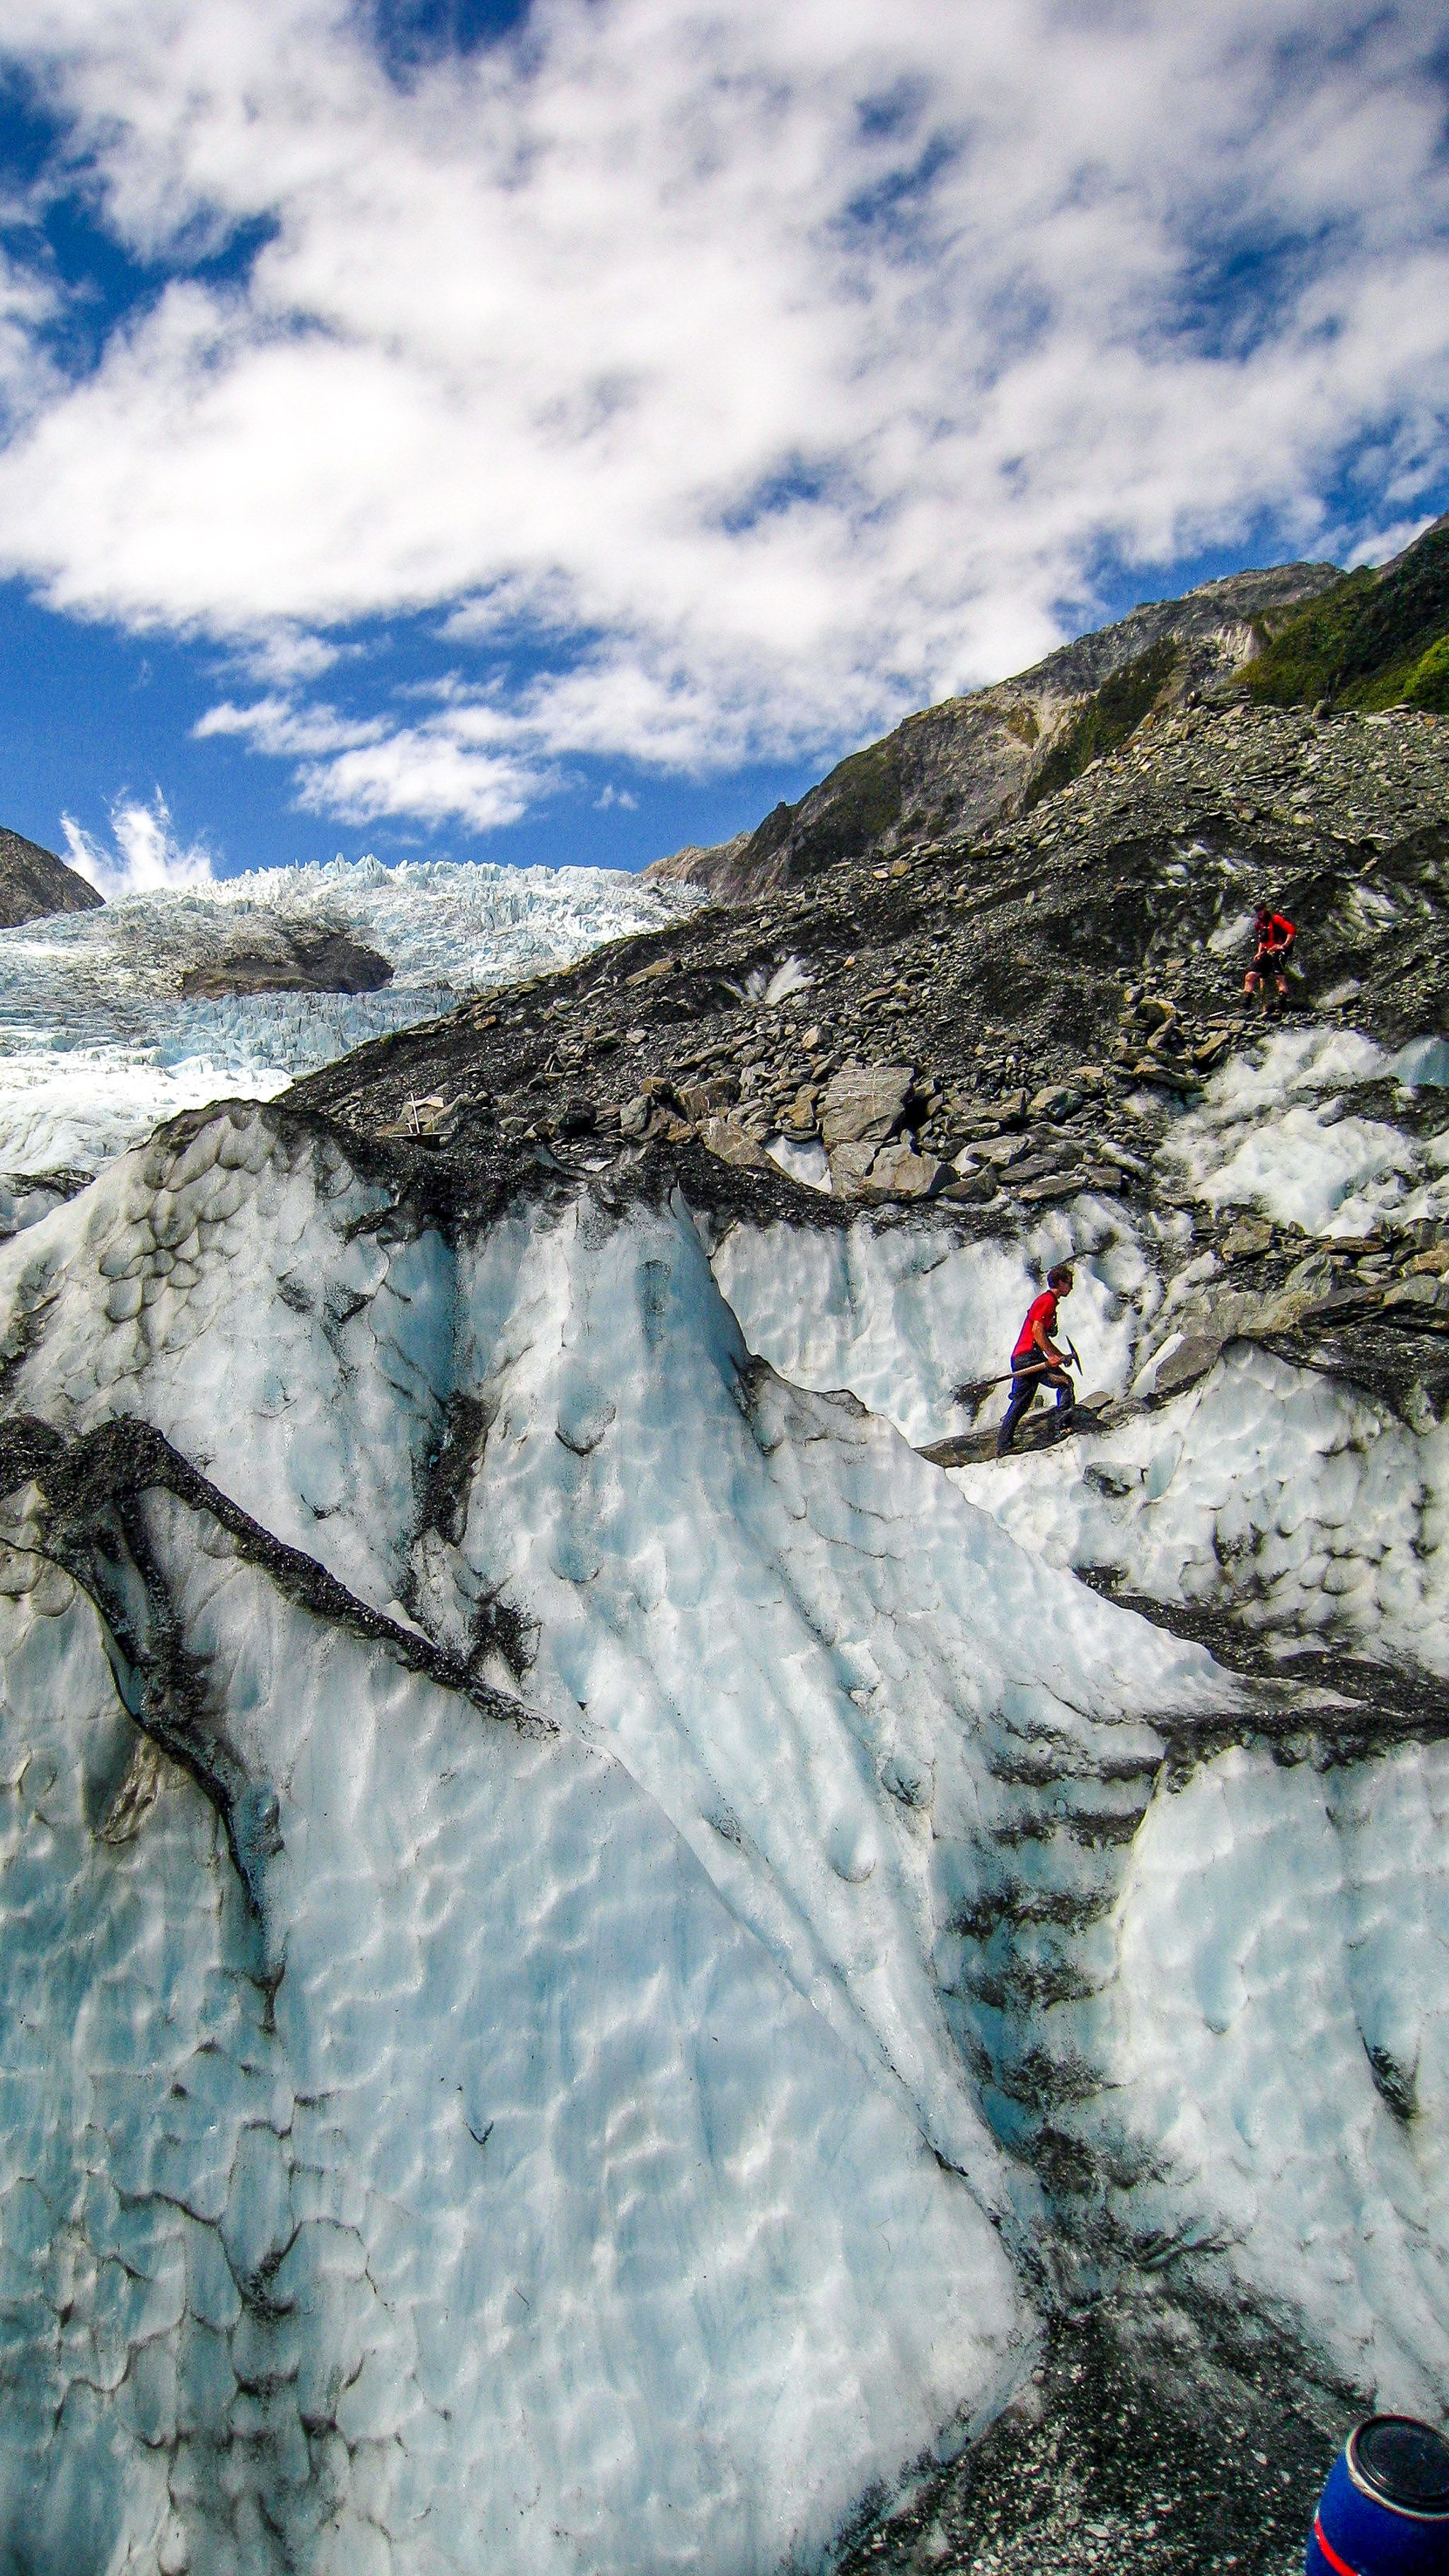 Amid High-Tech Alternatives, a Reckoning for Iceland's Glacier Keepers